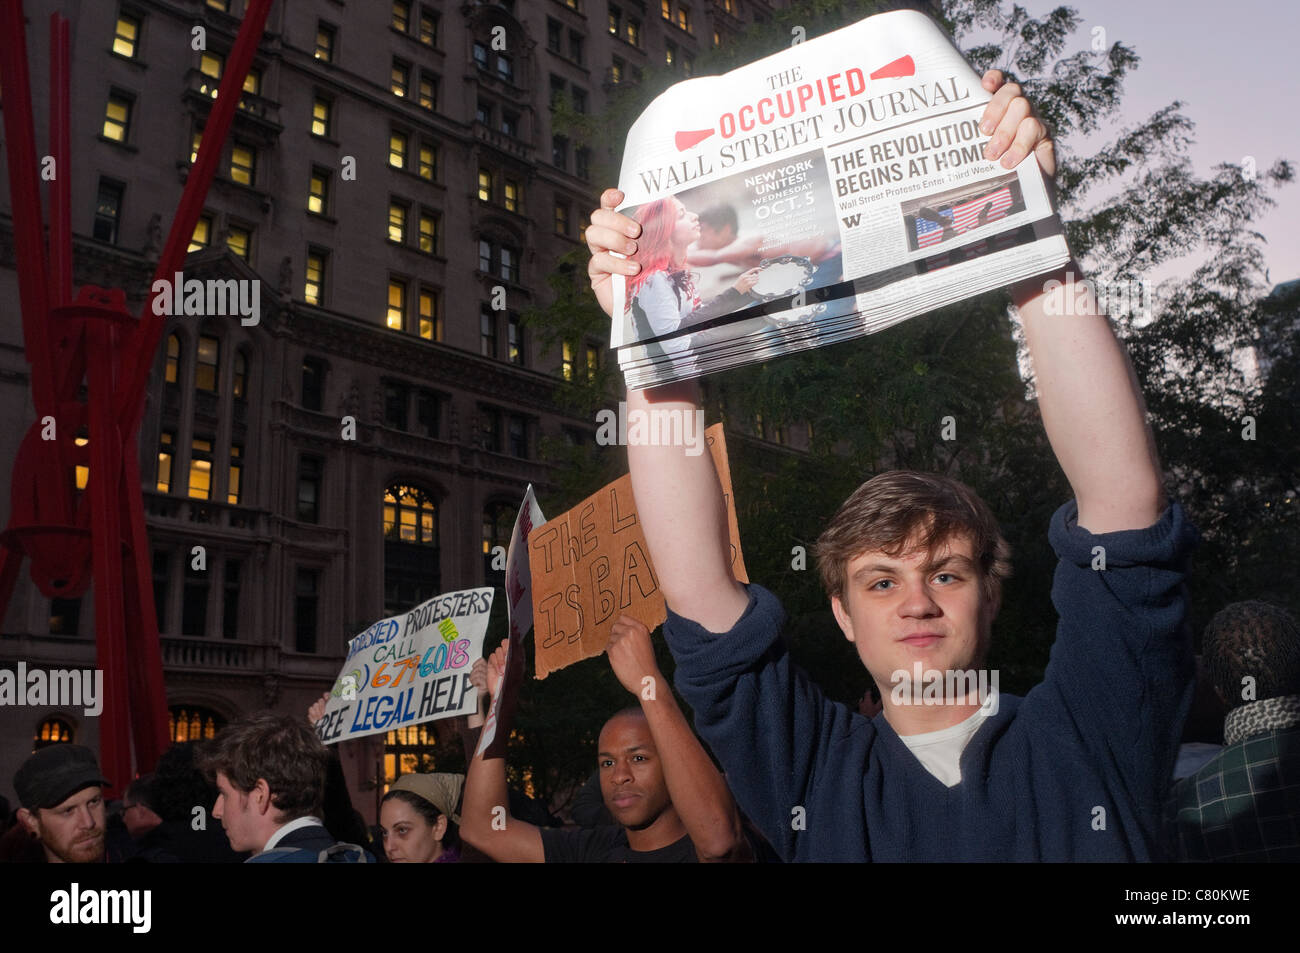 Anti Wall Street protesters distribute copies of the Occupied Wall Street Journal - Stock Image